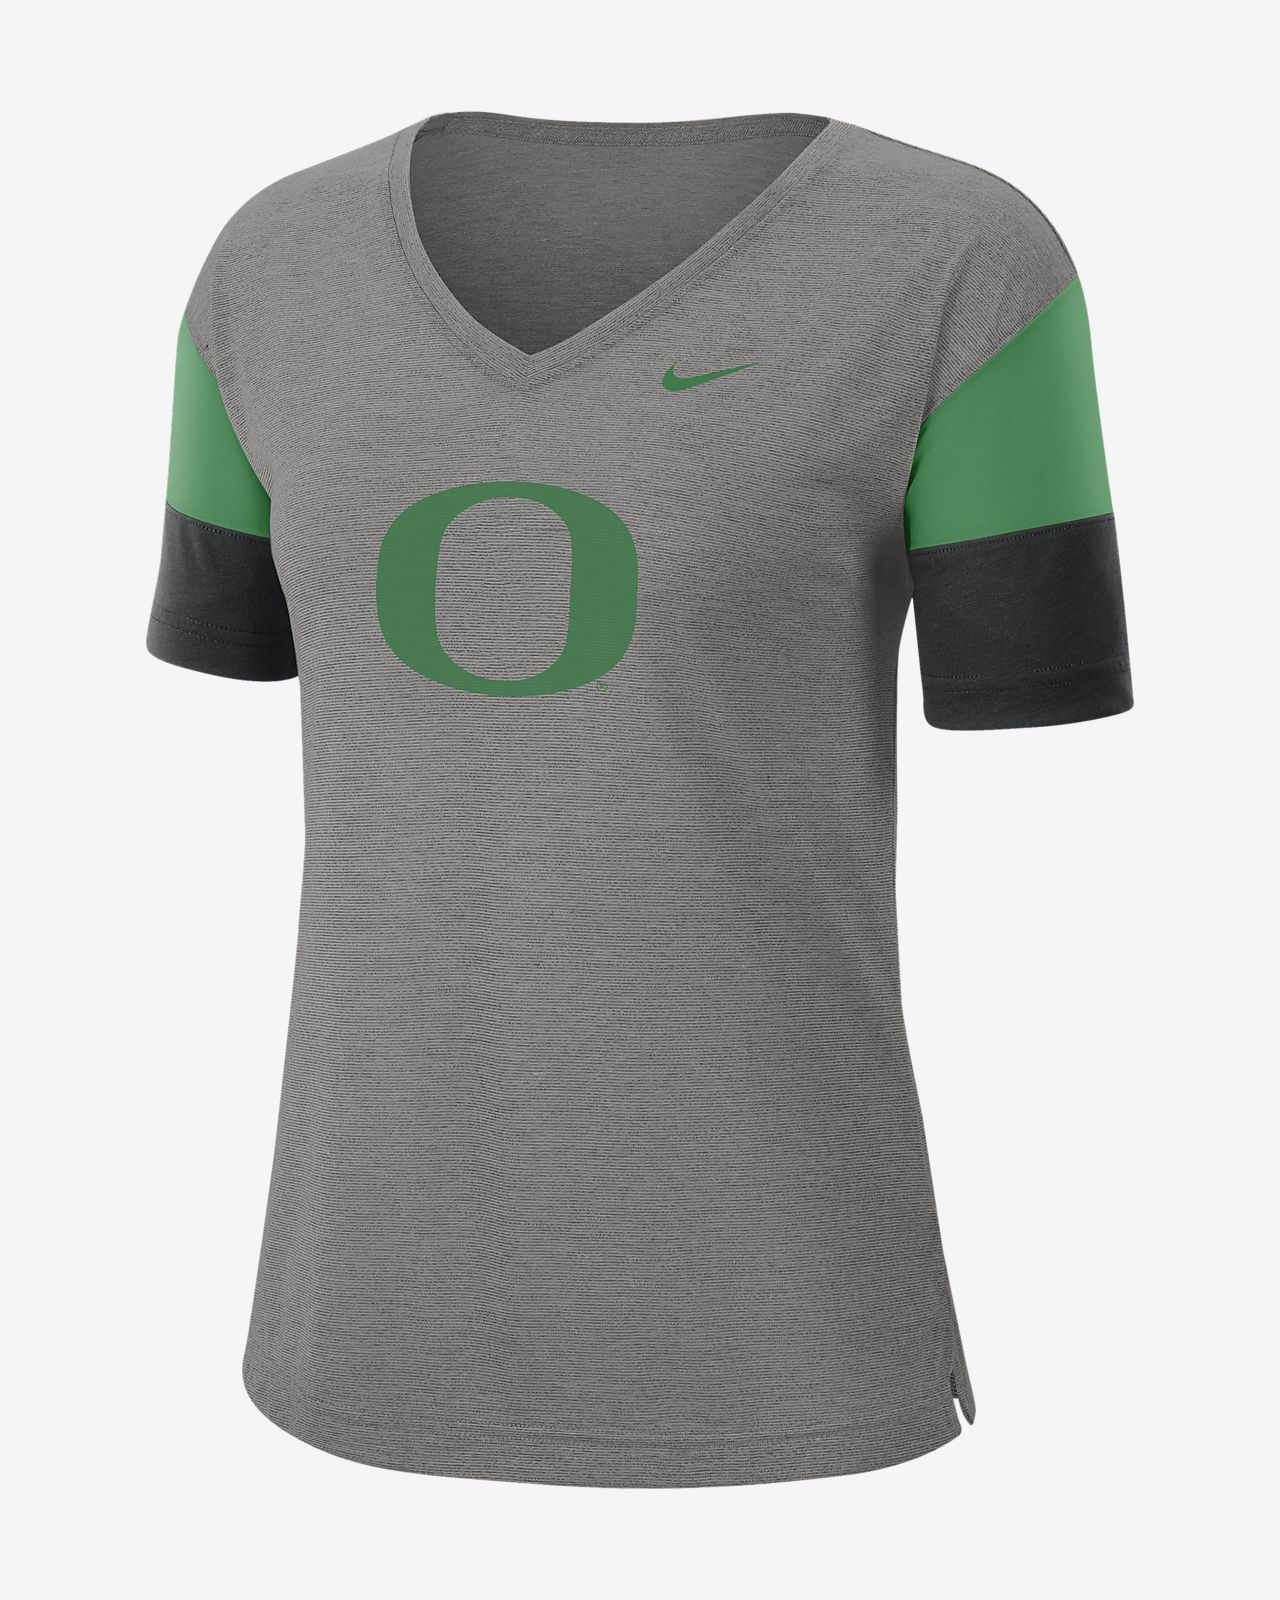 Nike College Breathe (Oregon) Women's Short-Sleeve V-Neck Top